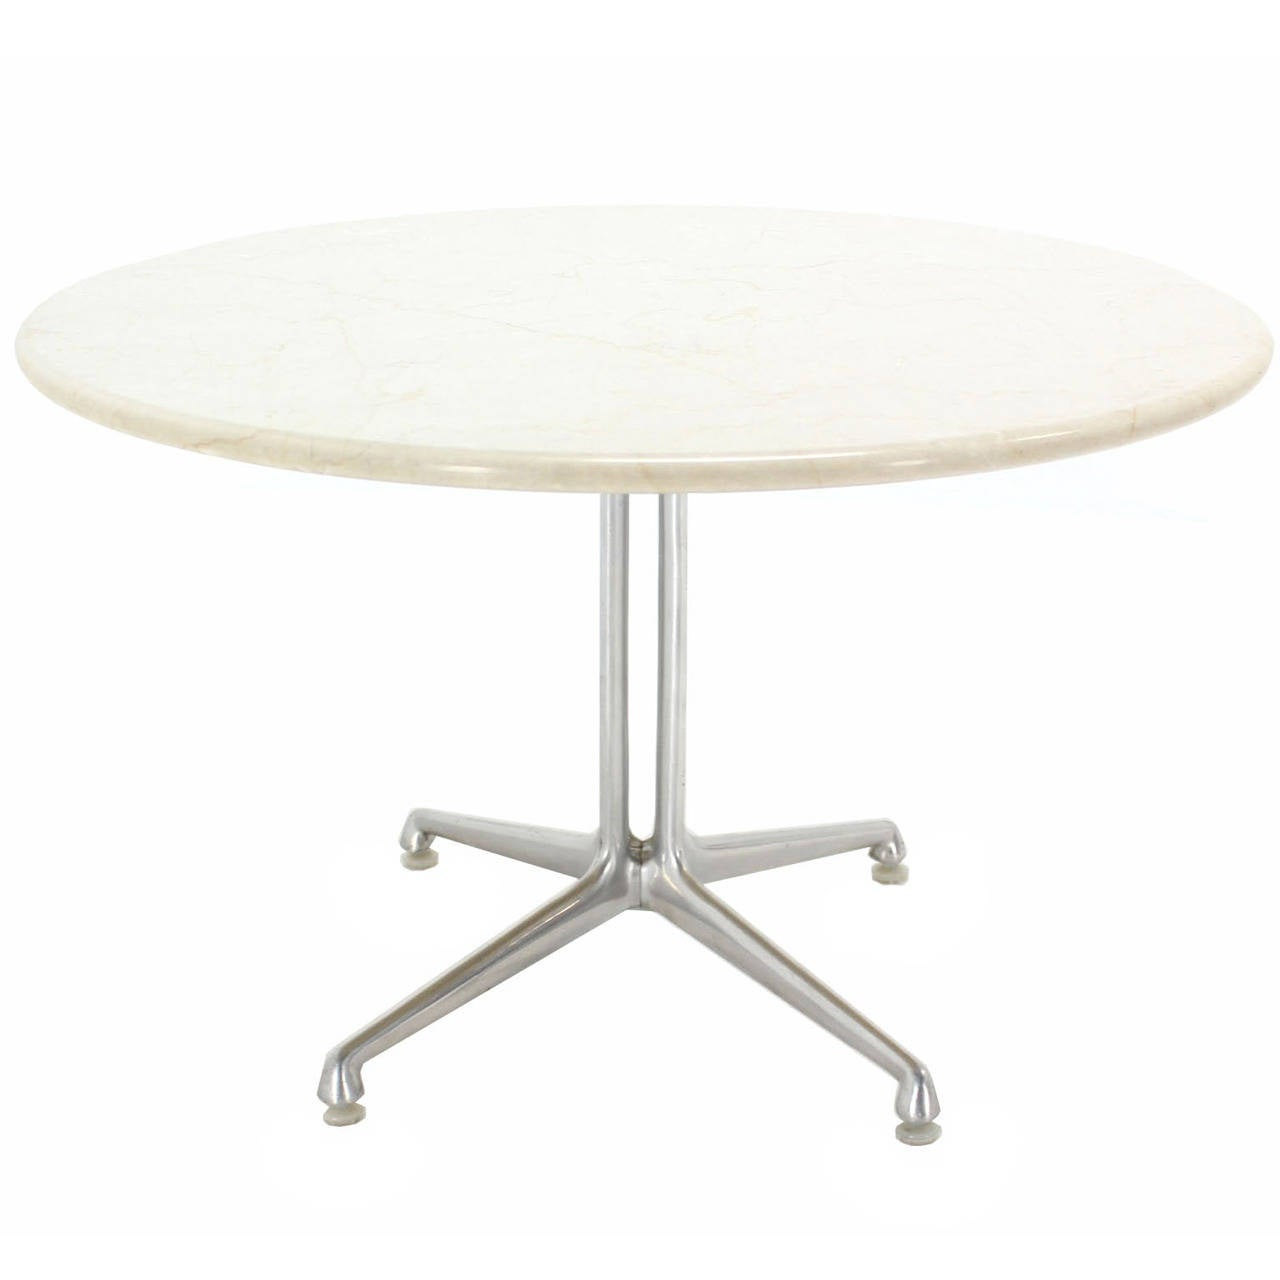 Exceptional La Fonda, Charles Eames White Marble Top Coffee Table 1